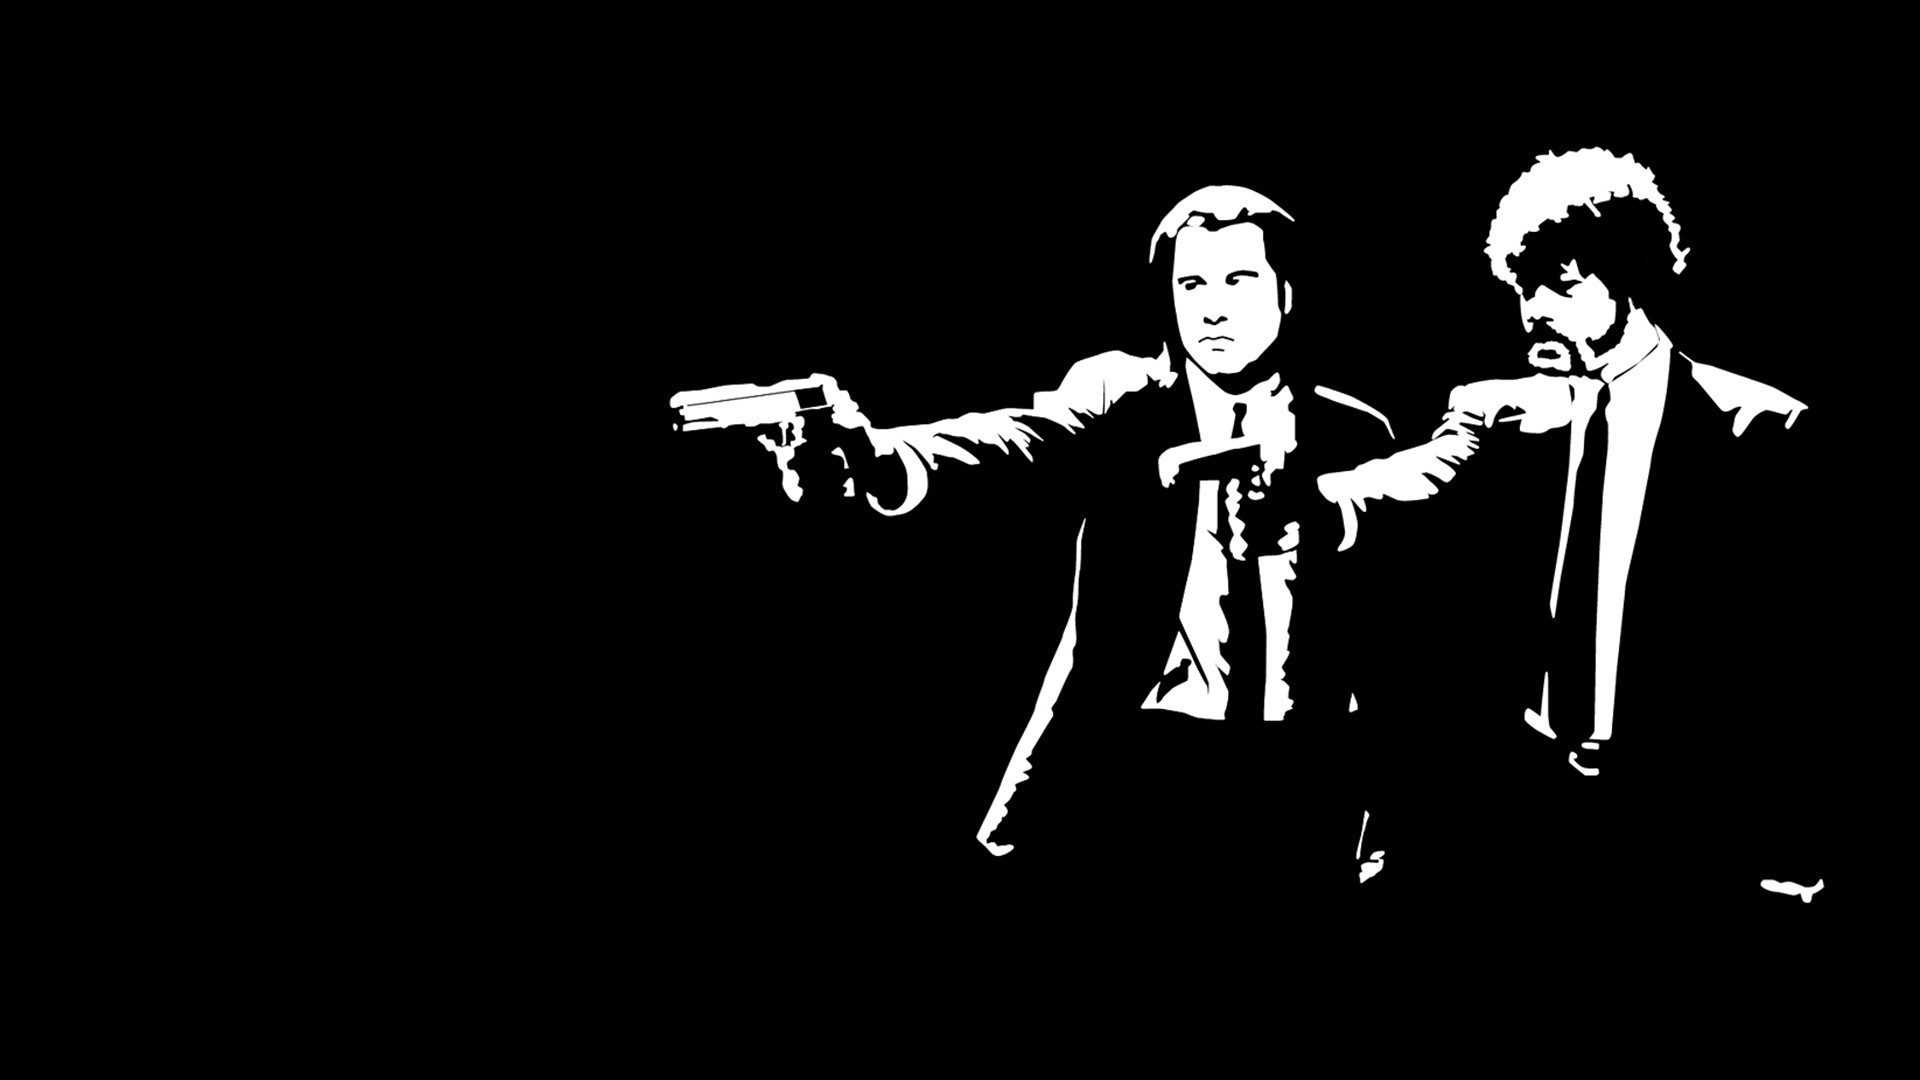 Pulp Fiction Wallpaper Hd 68 Images